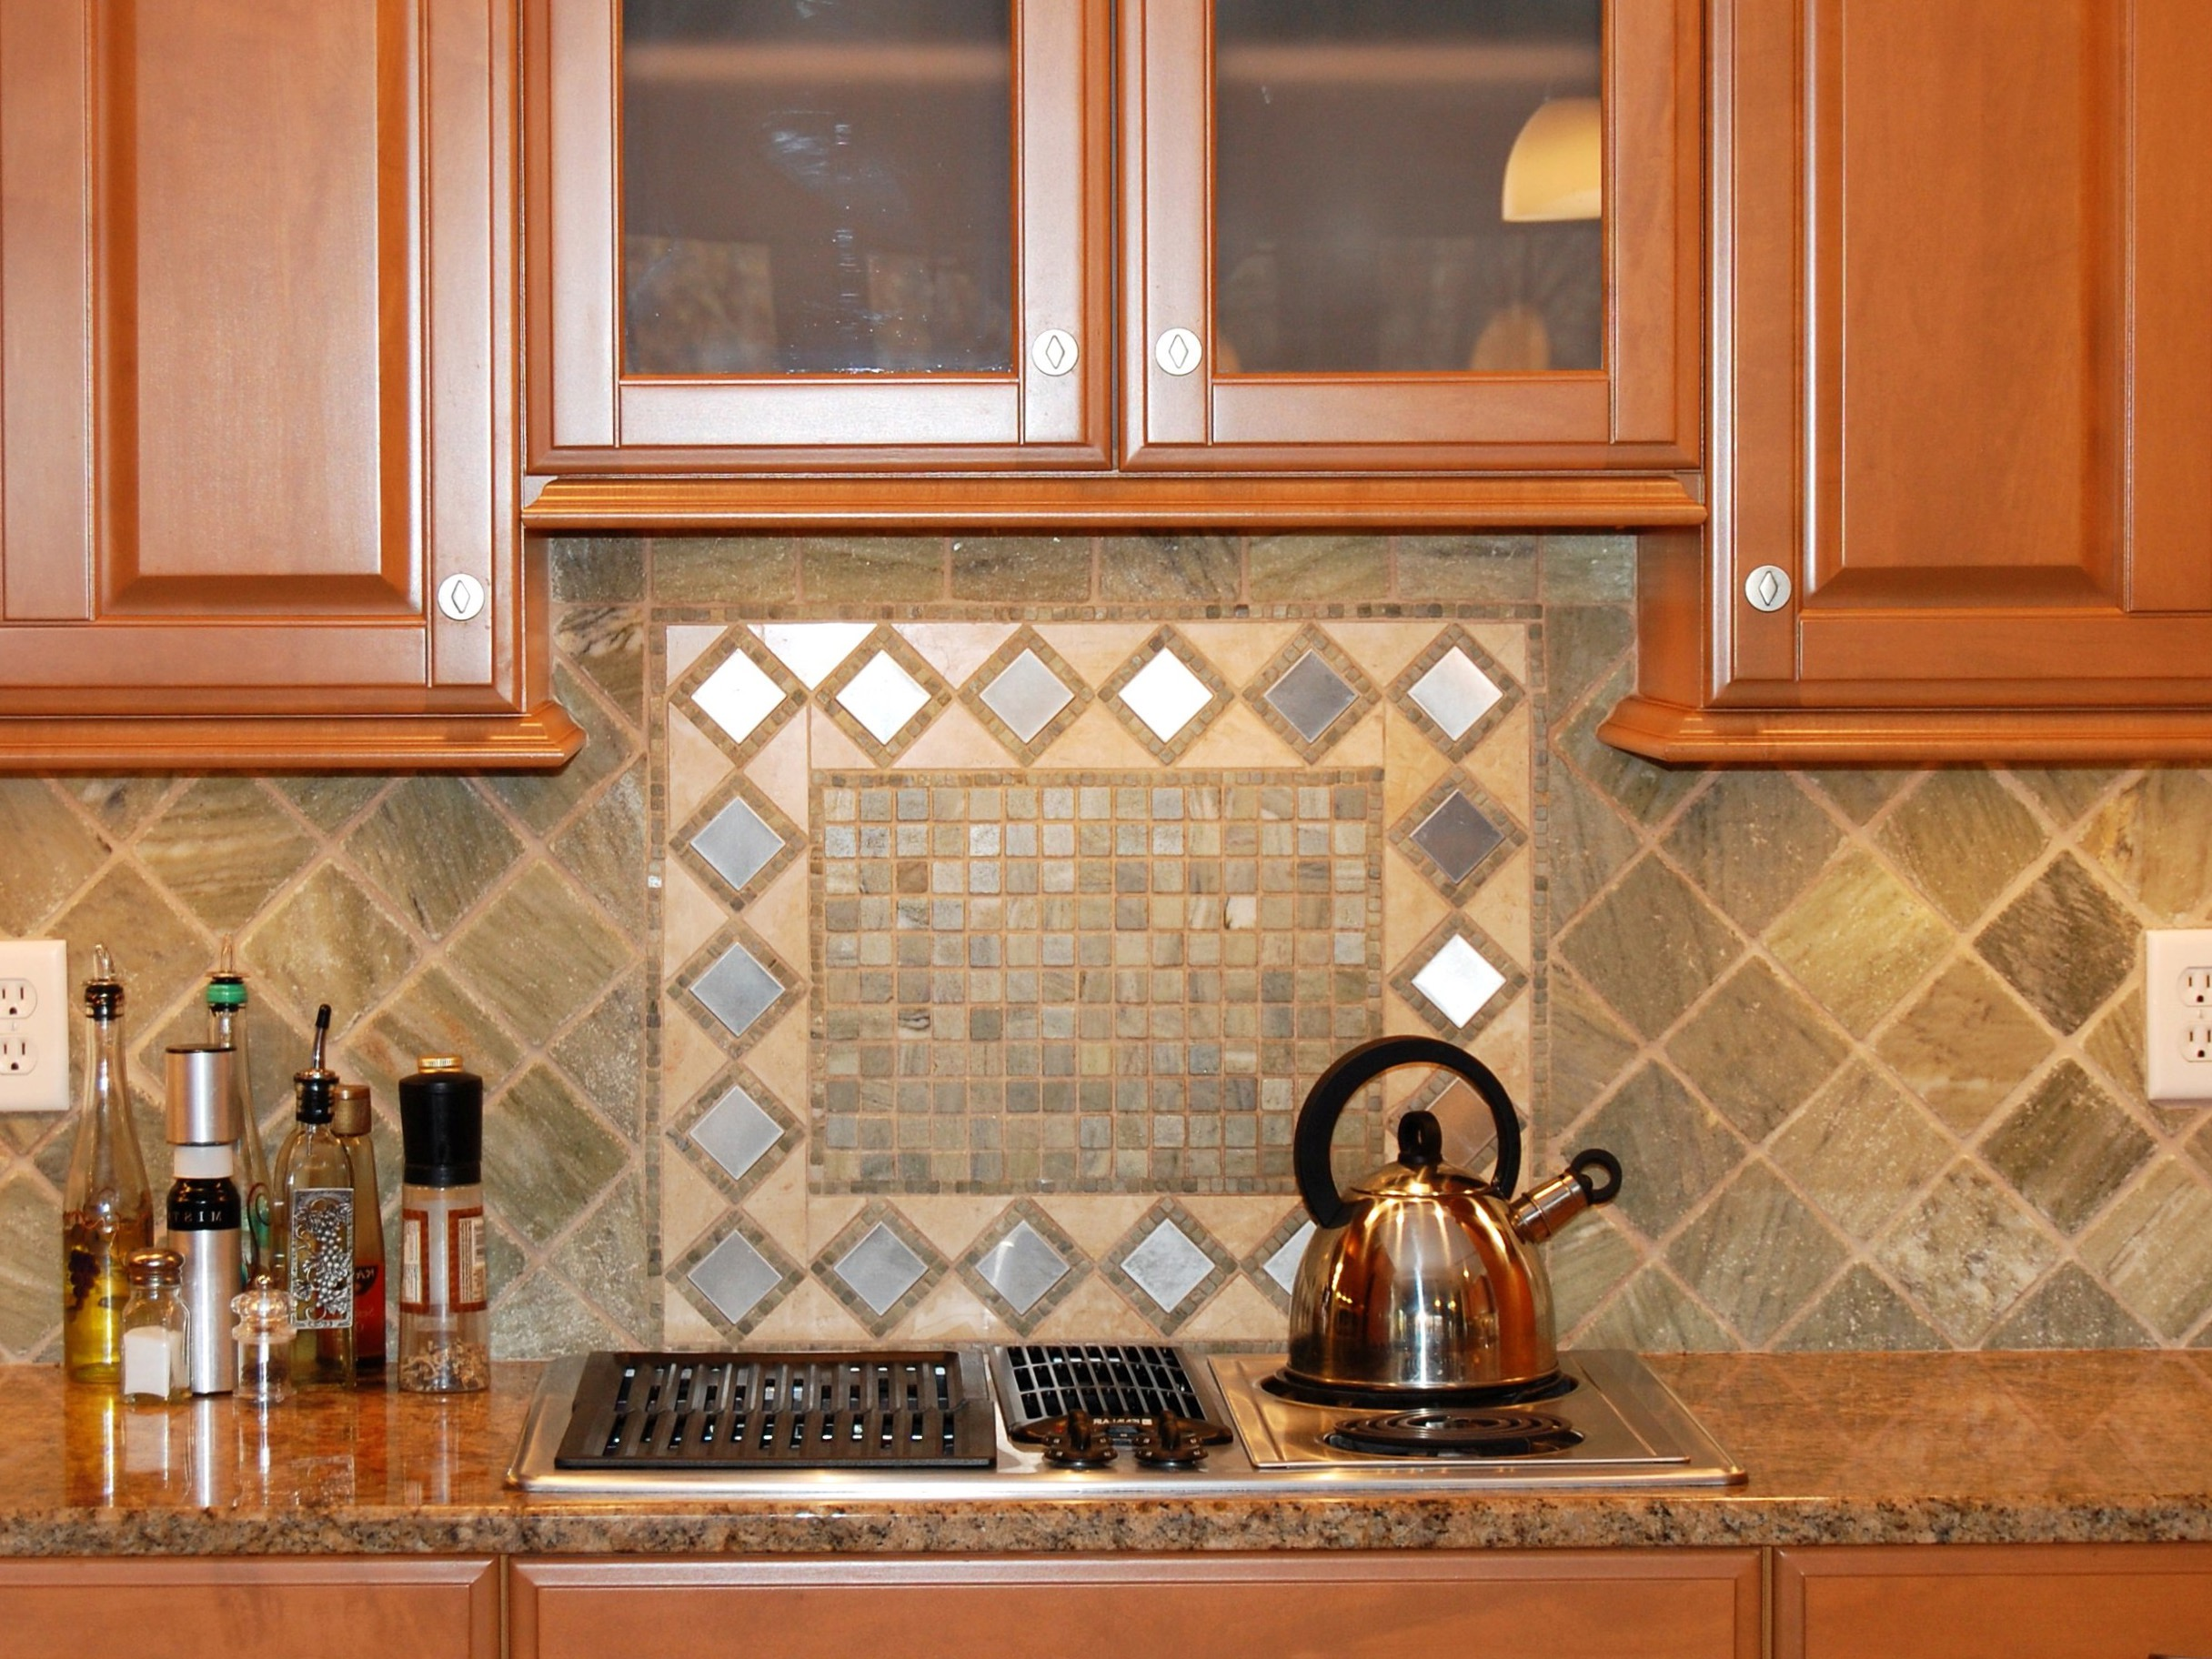 Kitchen custom sink backsplash ideas for your new kitchen 14 of kitchen backsplash from diamond shaped stainless steel accent tiles photo 14 of 32 dailygadgetfo Images